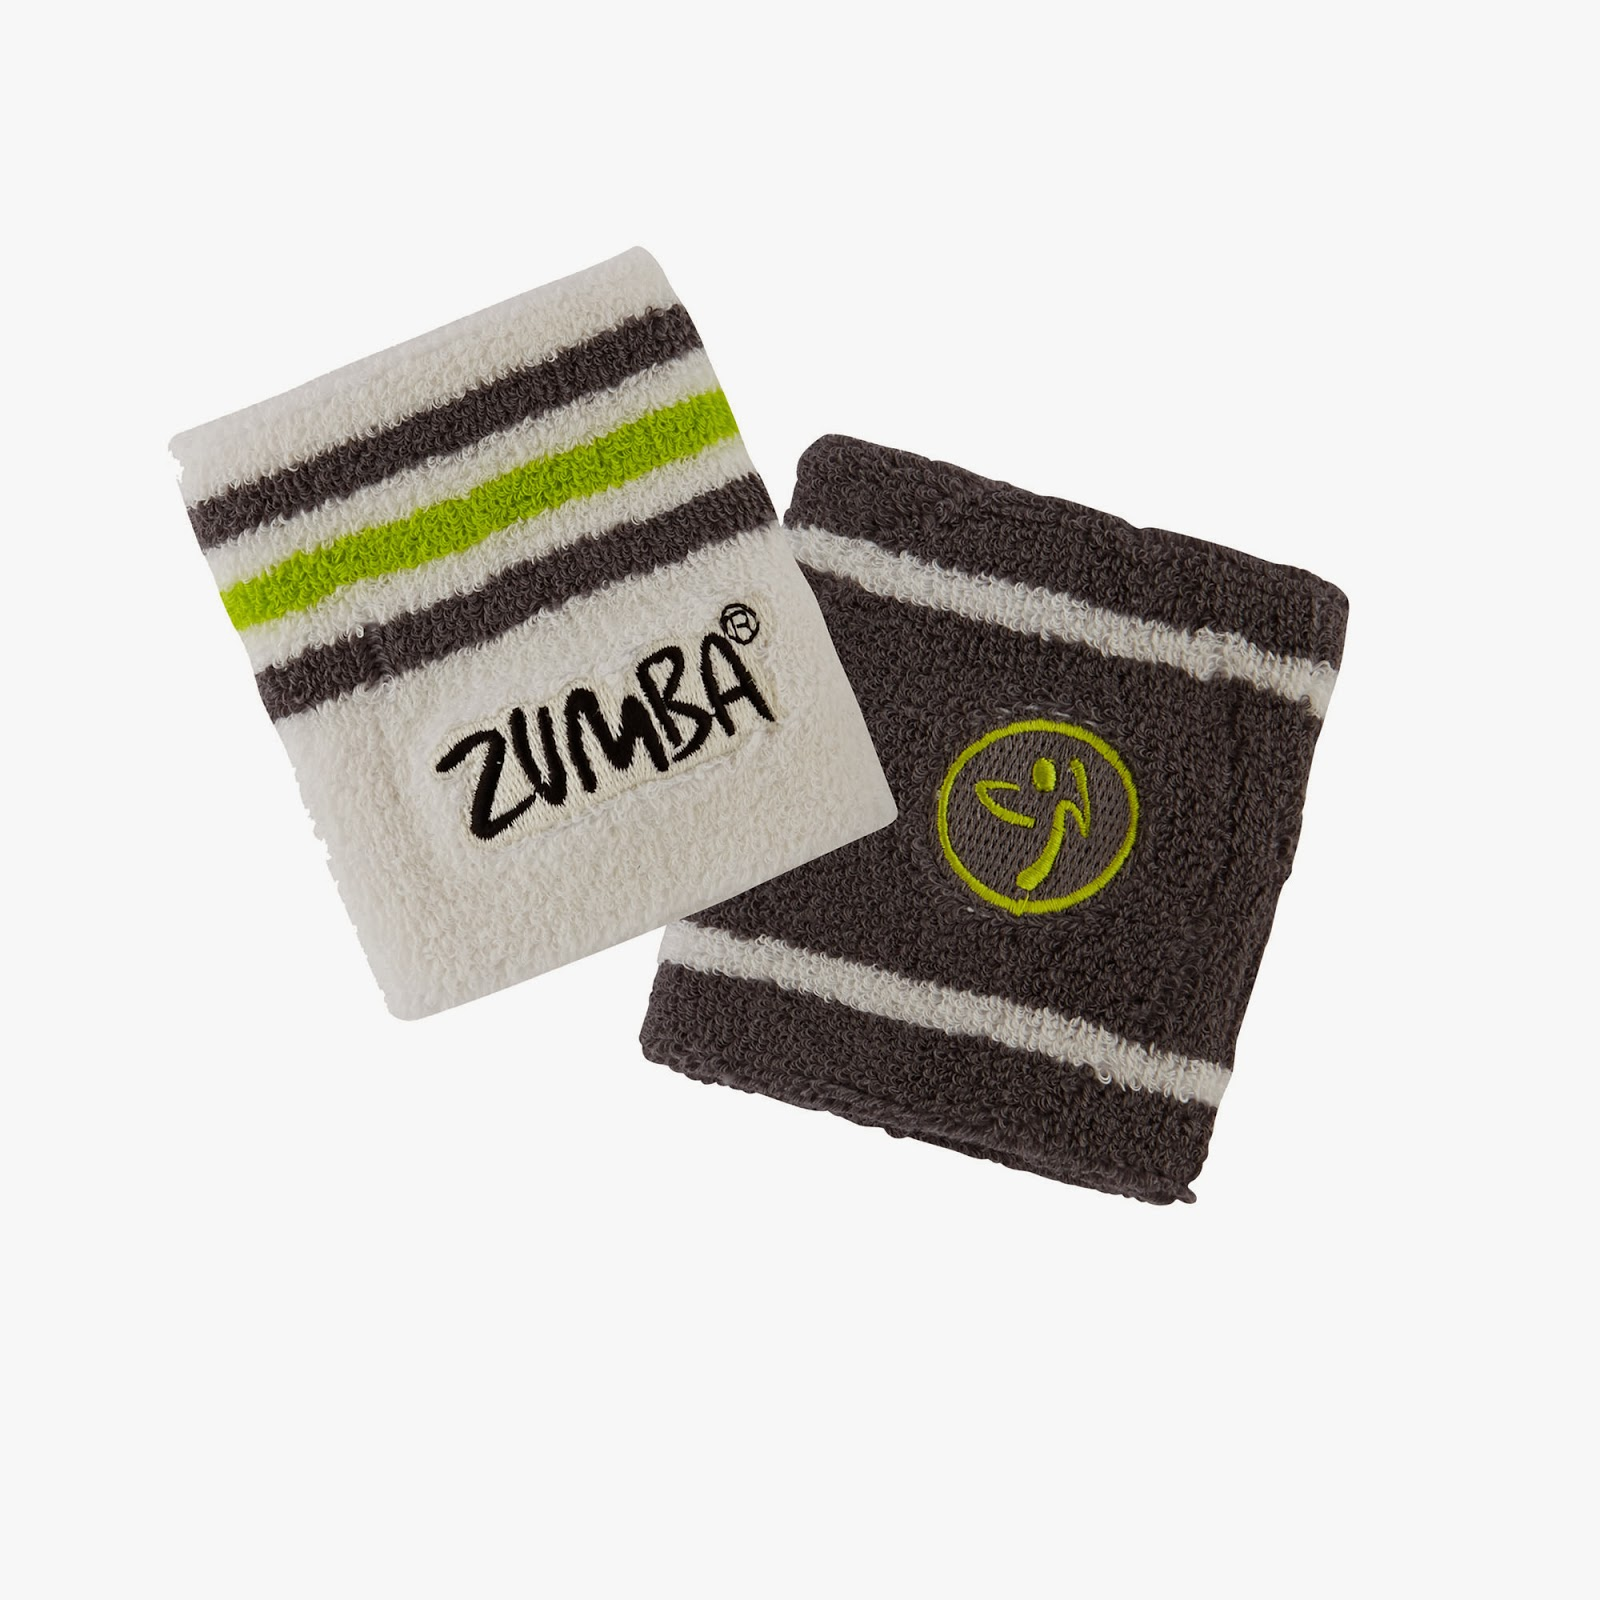 http://www.zumba.com/en-US/store-zin/US/product/sweat-my-wristbands?color=Zumba+Green